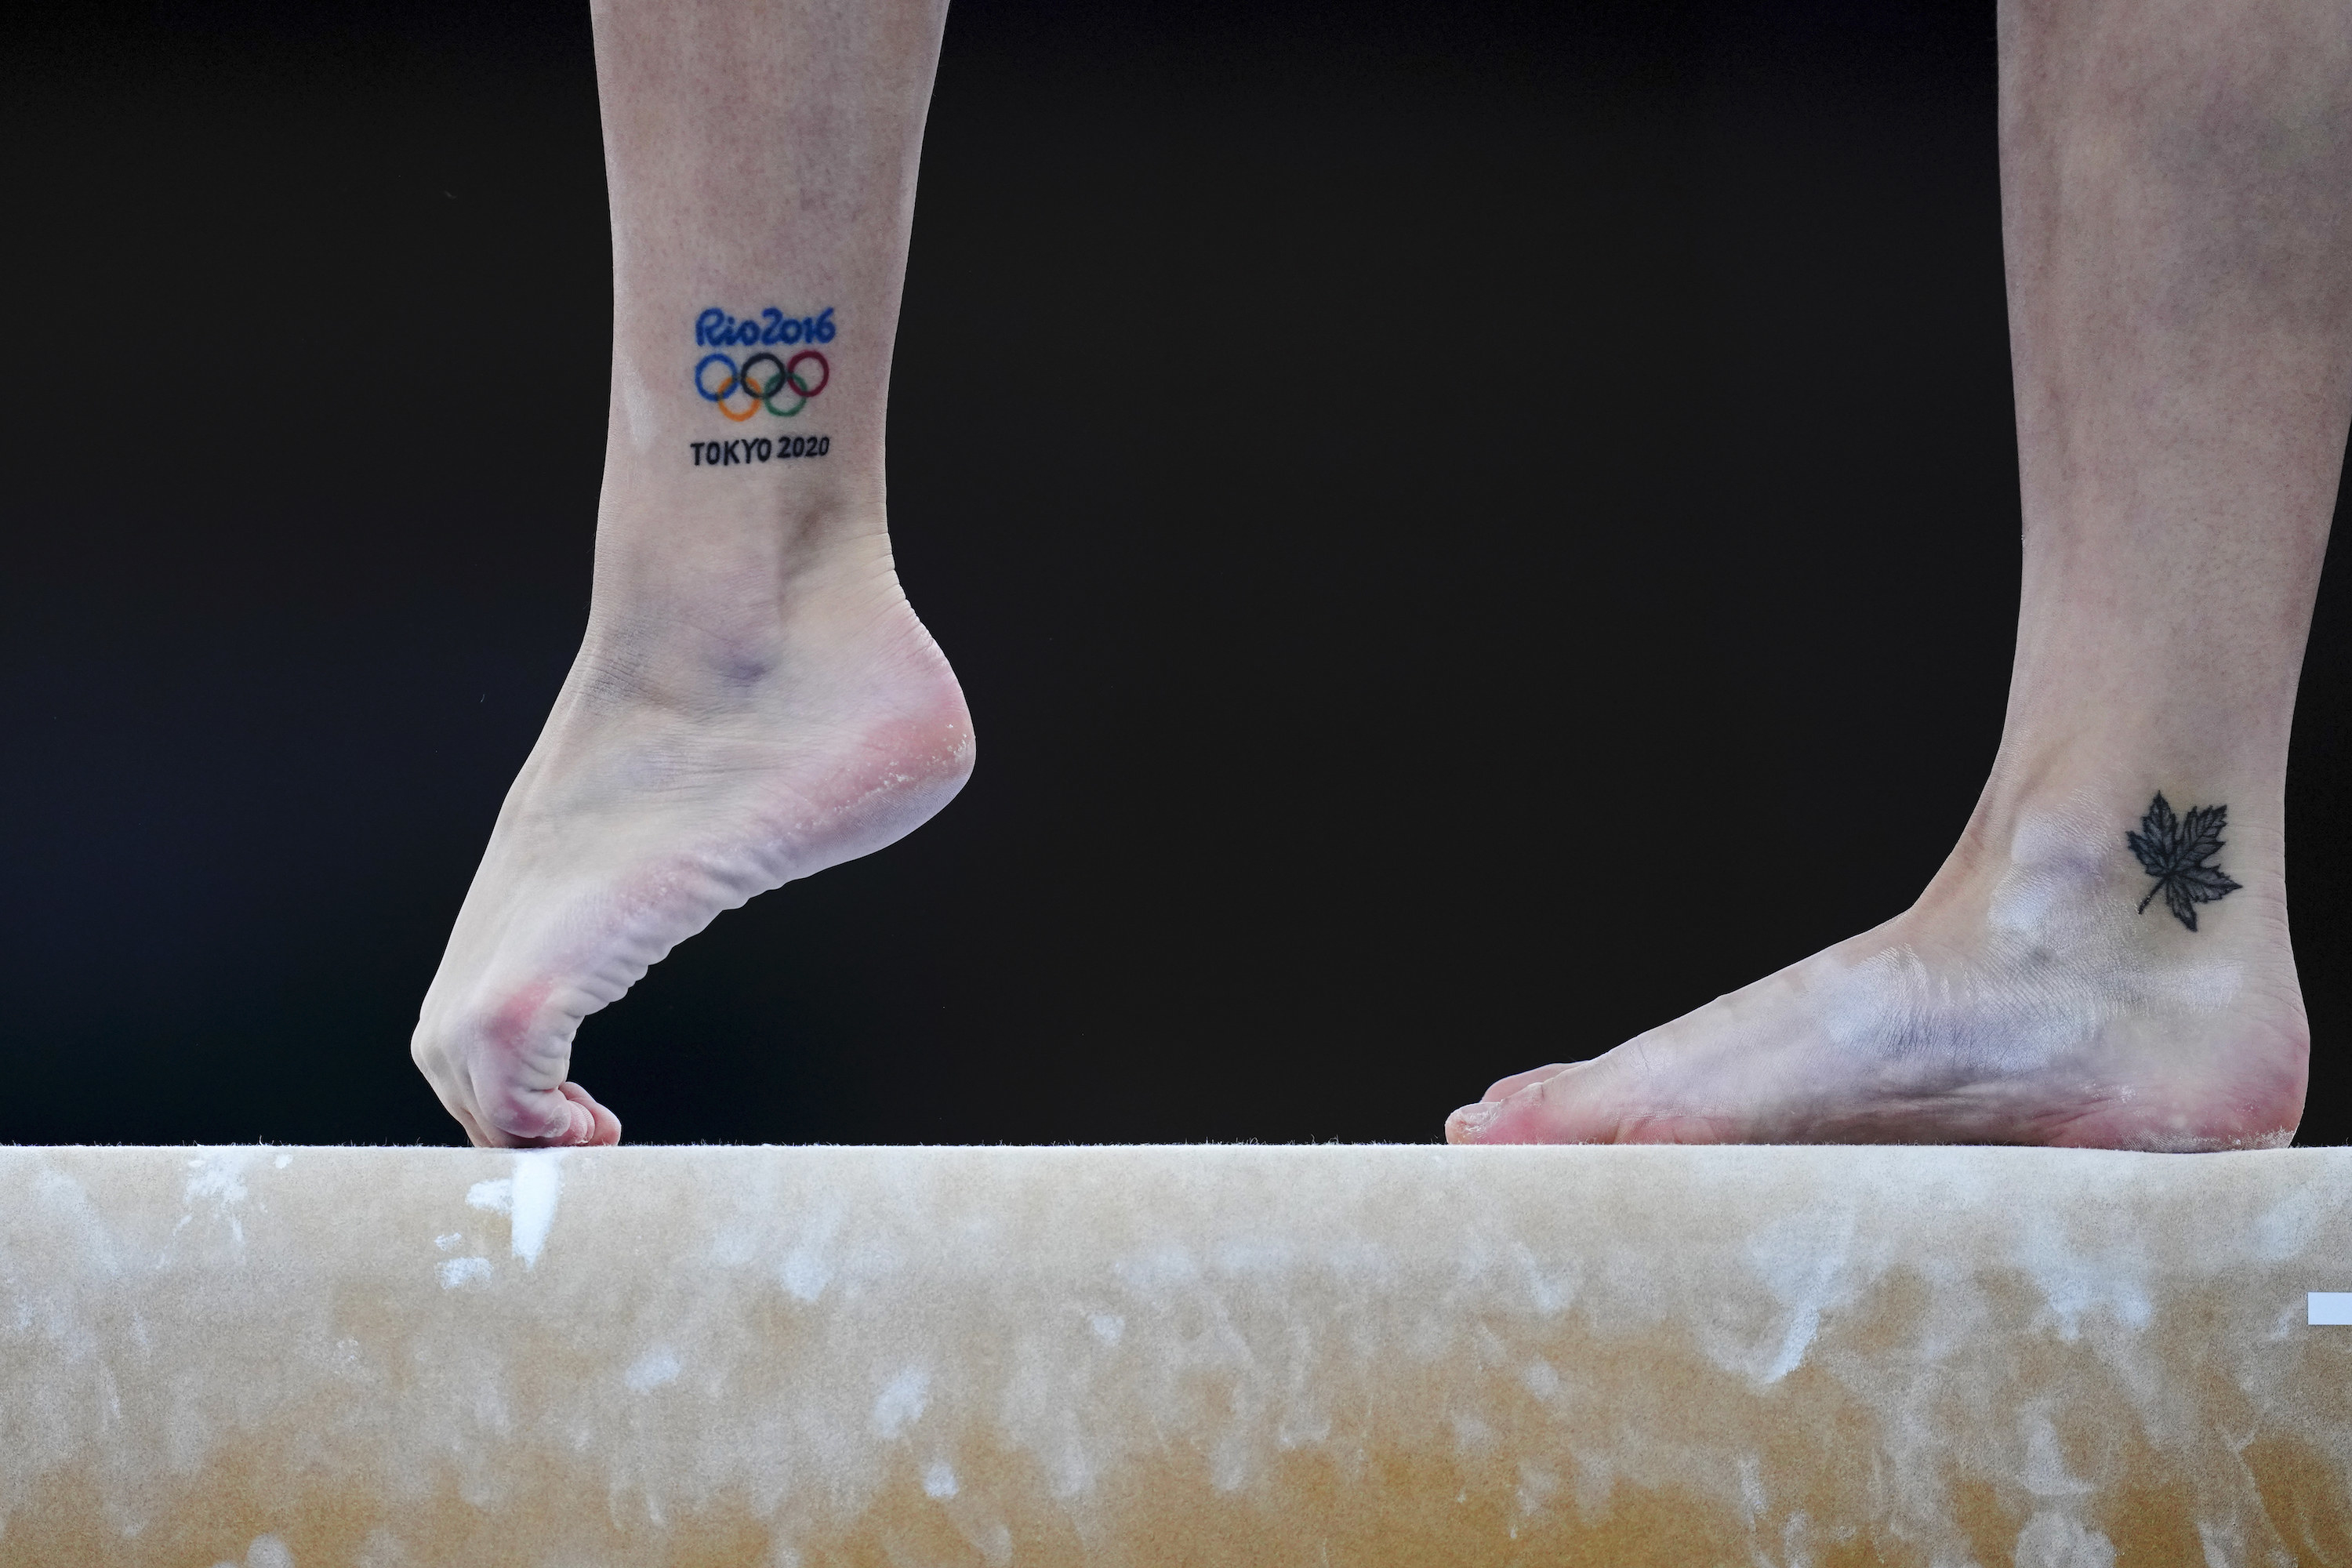 A gymnast's pointed foot on the balance beam with the Olympic rings tattooed on ankle